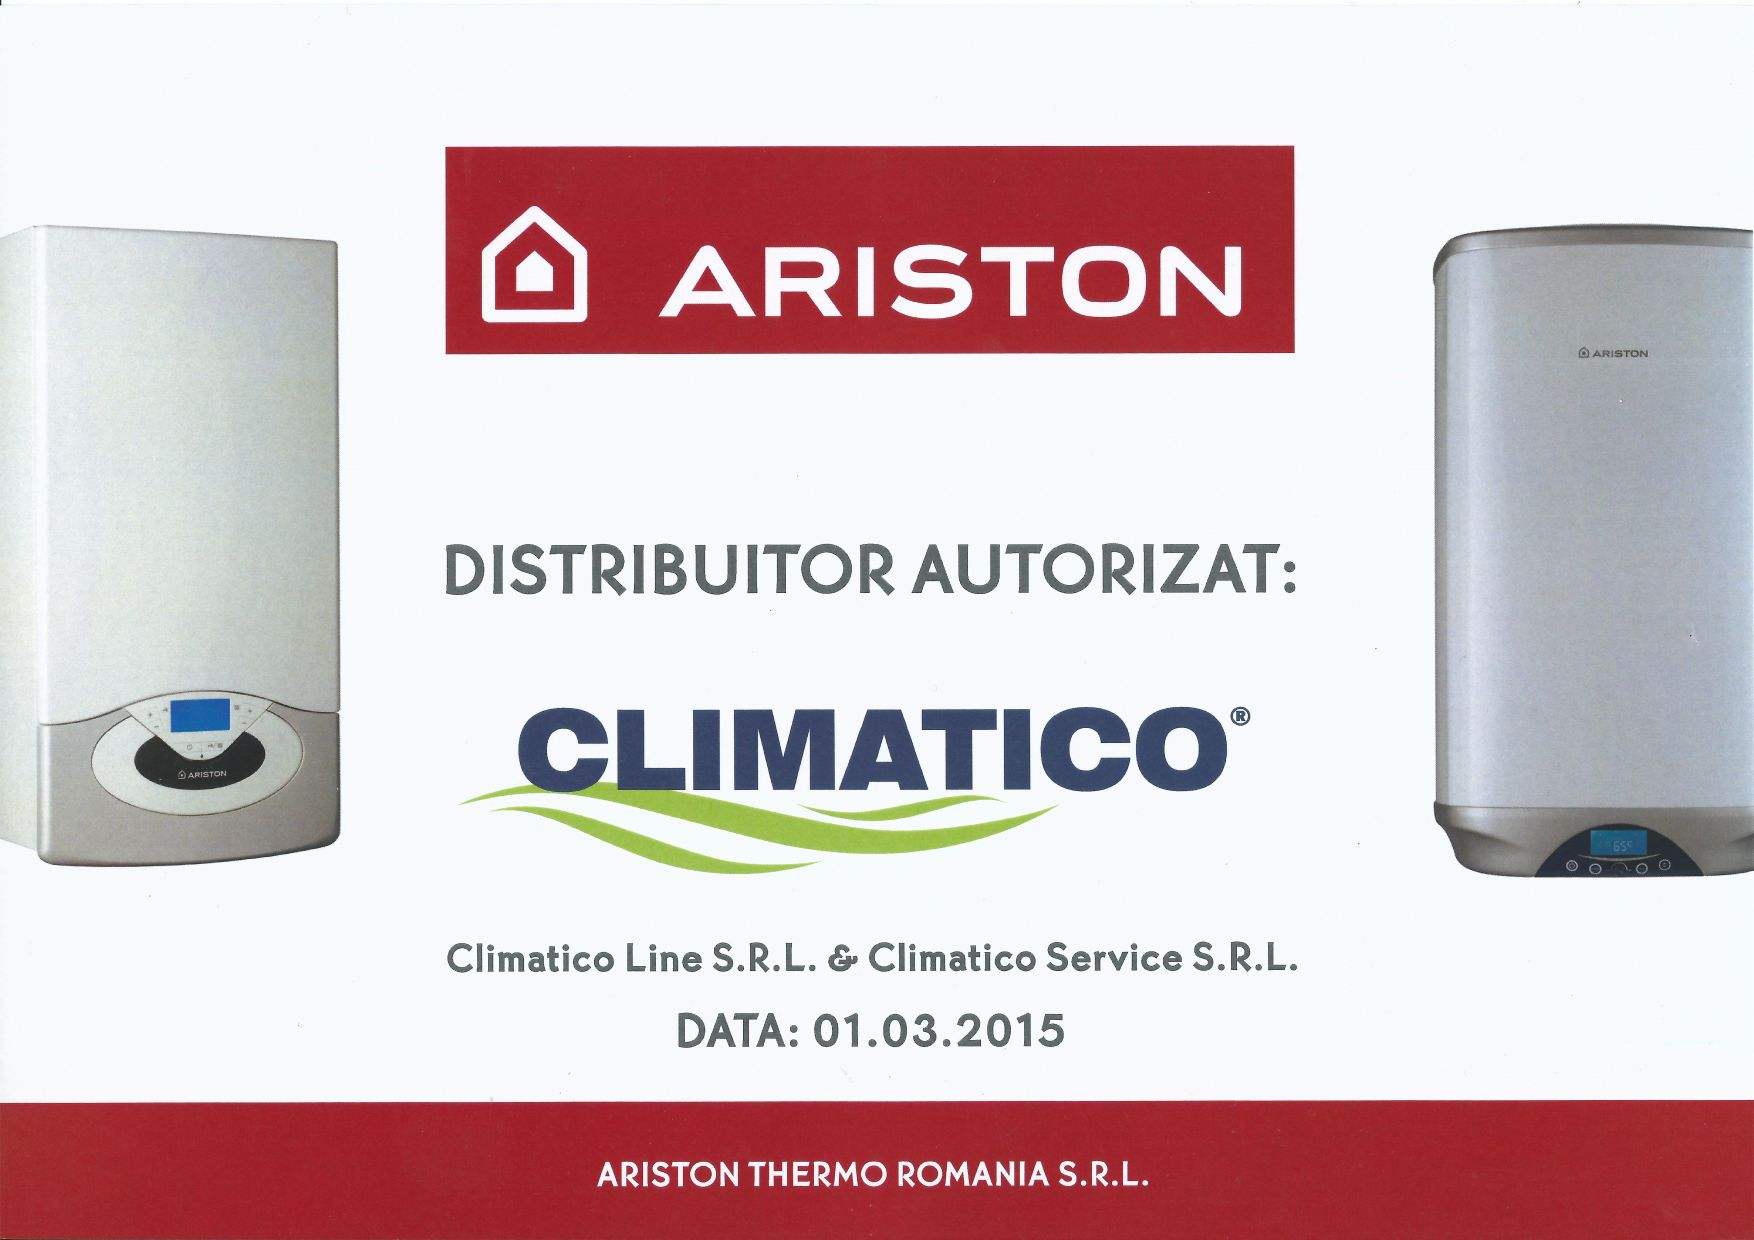 Climatico distribuitor autorizat Ariston